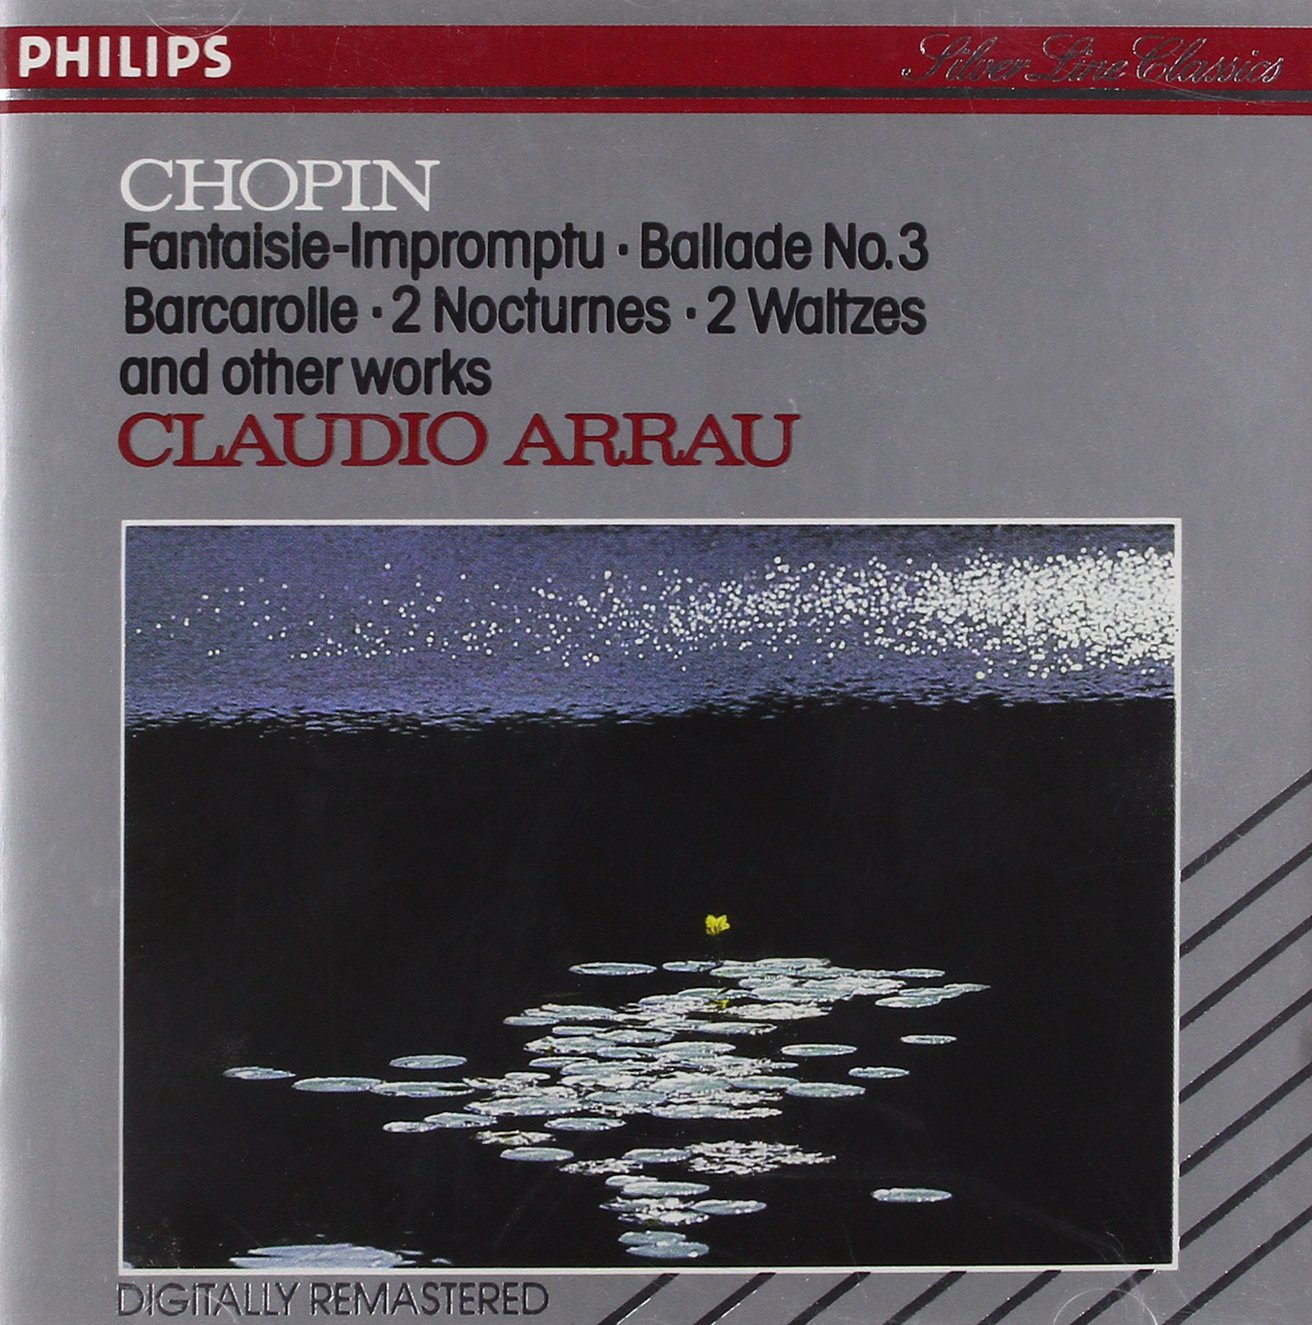 Chopin: Piano Works: Fantasie-Imprompt/Ballade No. 3/Barcarolle/2 Nocturnes/2 Waltzes and other works